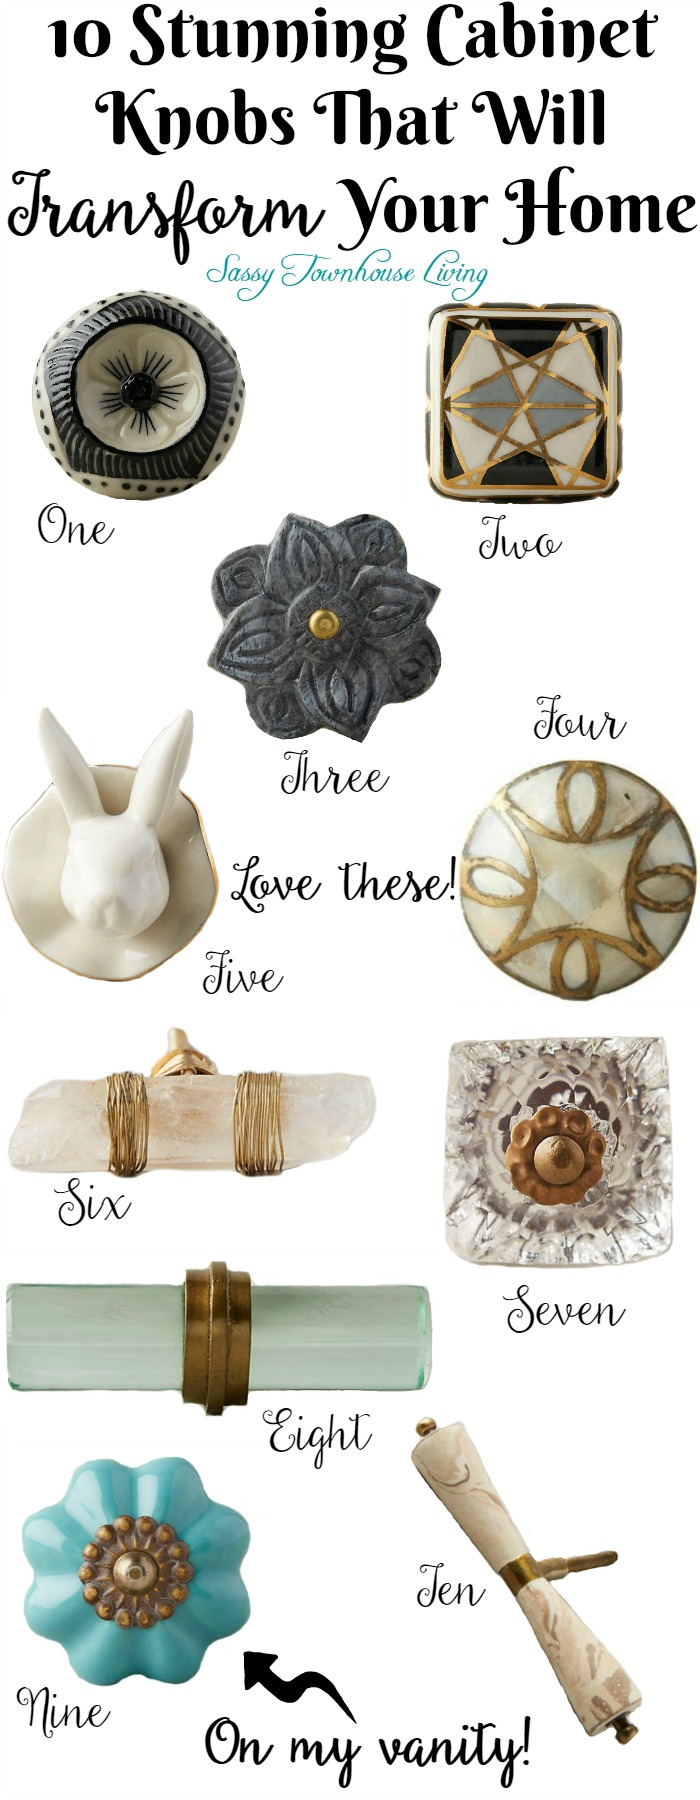 10 Stunning Cabinet Knobs That Will Transform Your Home - Sassy Townhouse Living